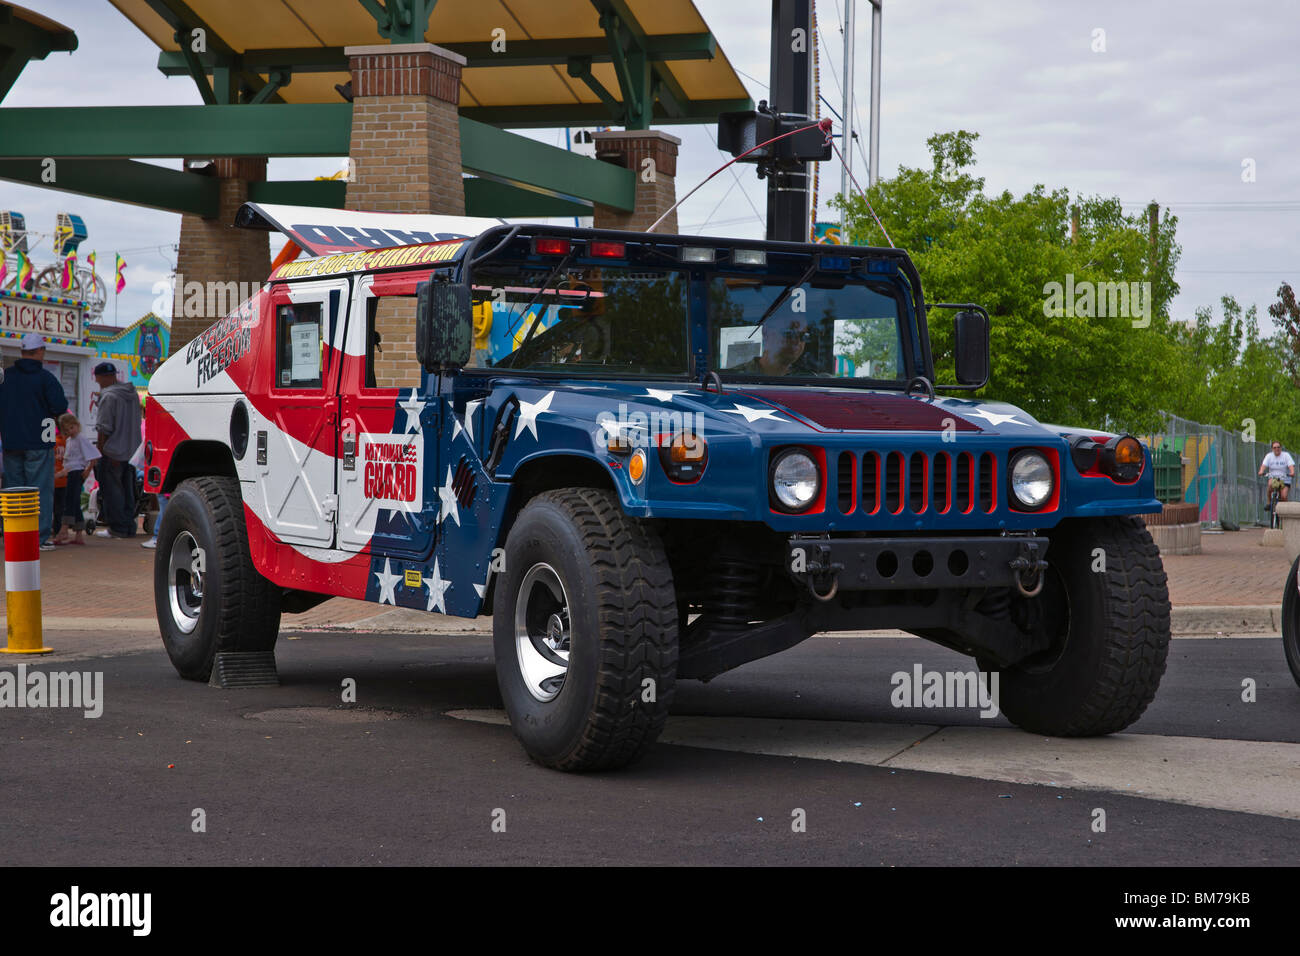 Hengguan HG-P408 Humvee 4x4 National-military-guard-hummer-painted-with-american-flag-stars-and-BM79KB